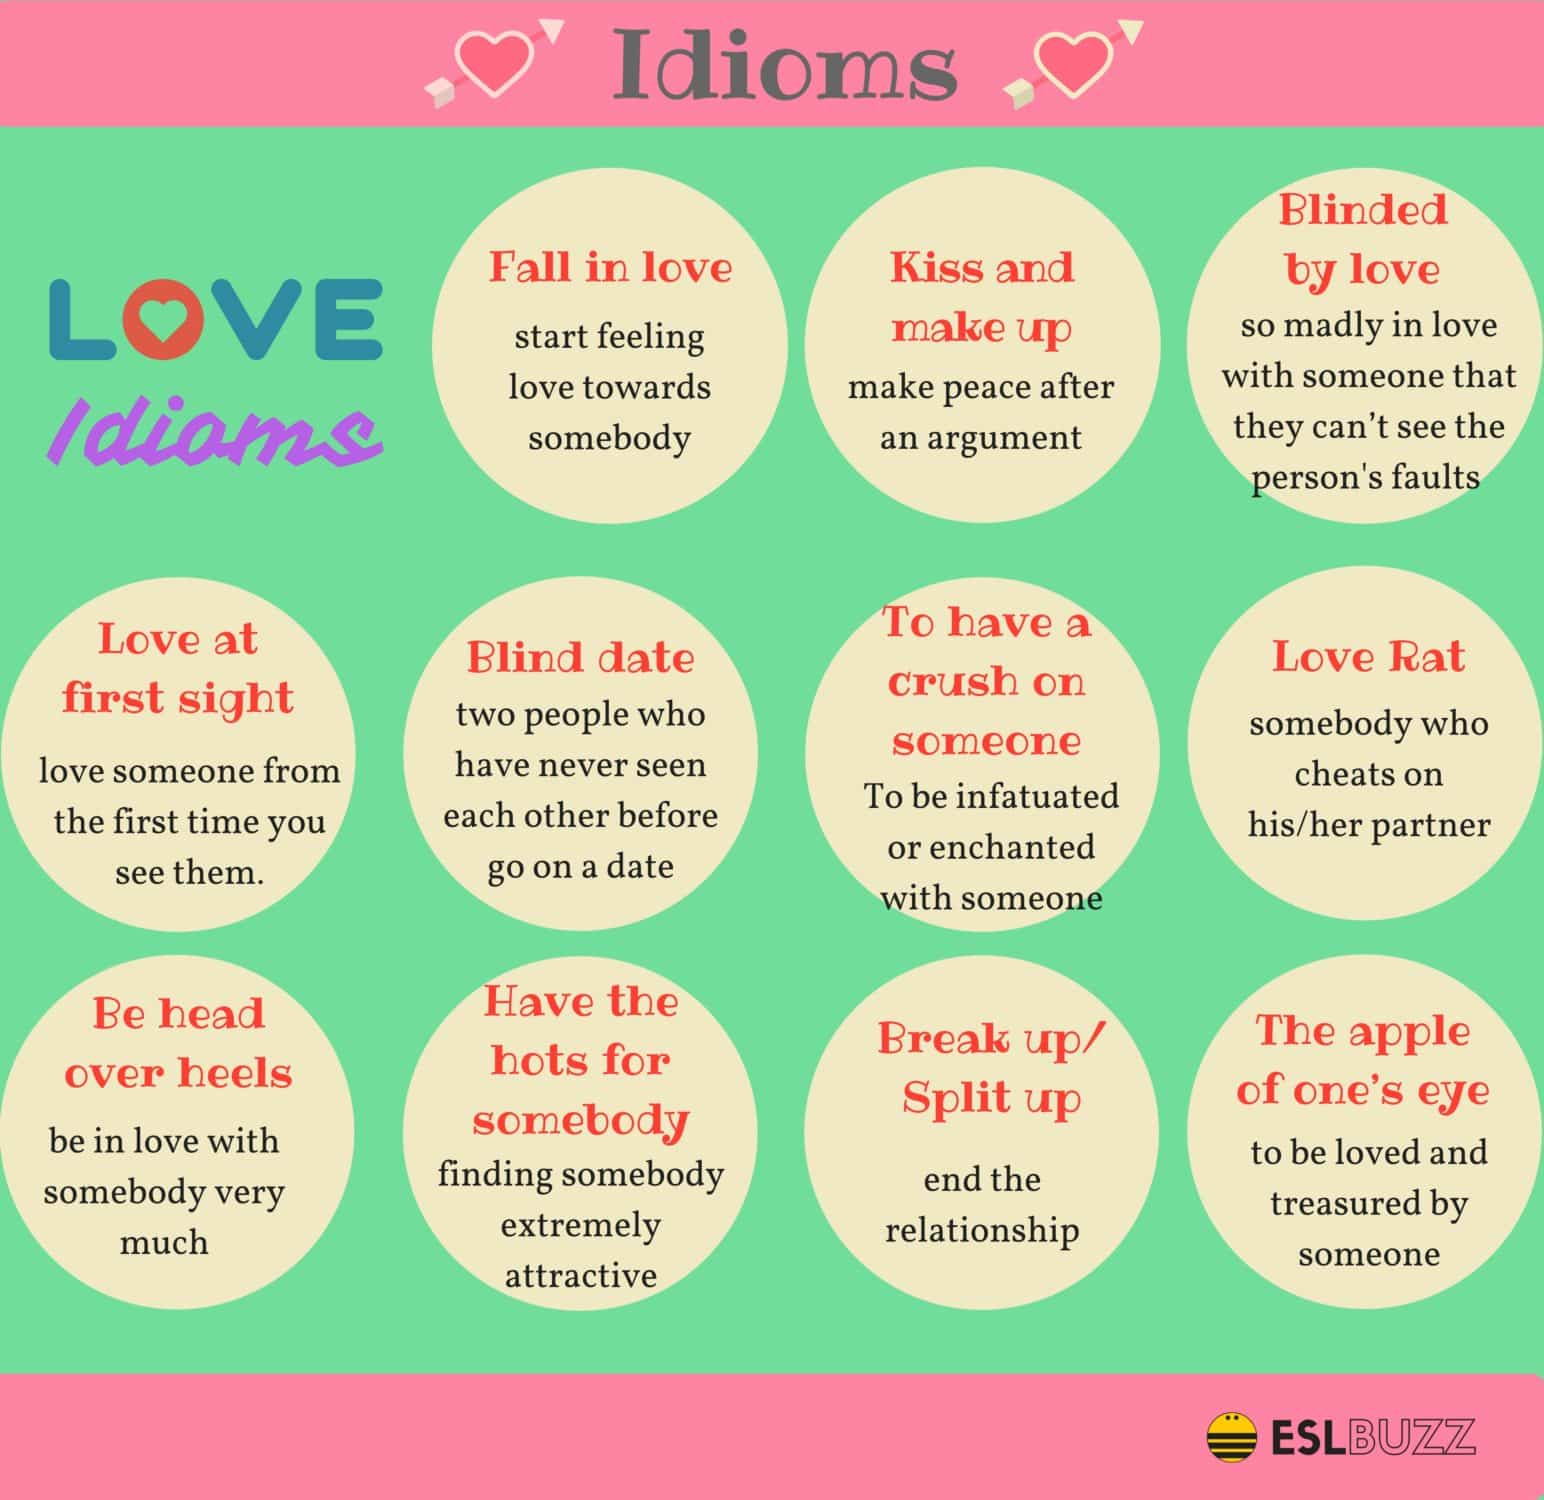 List of 120+ Popular English Idioms Arranged in Categories 6